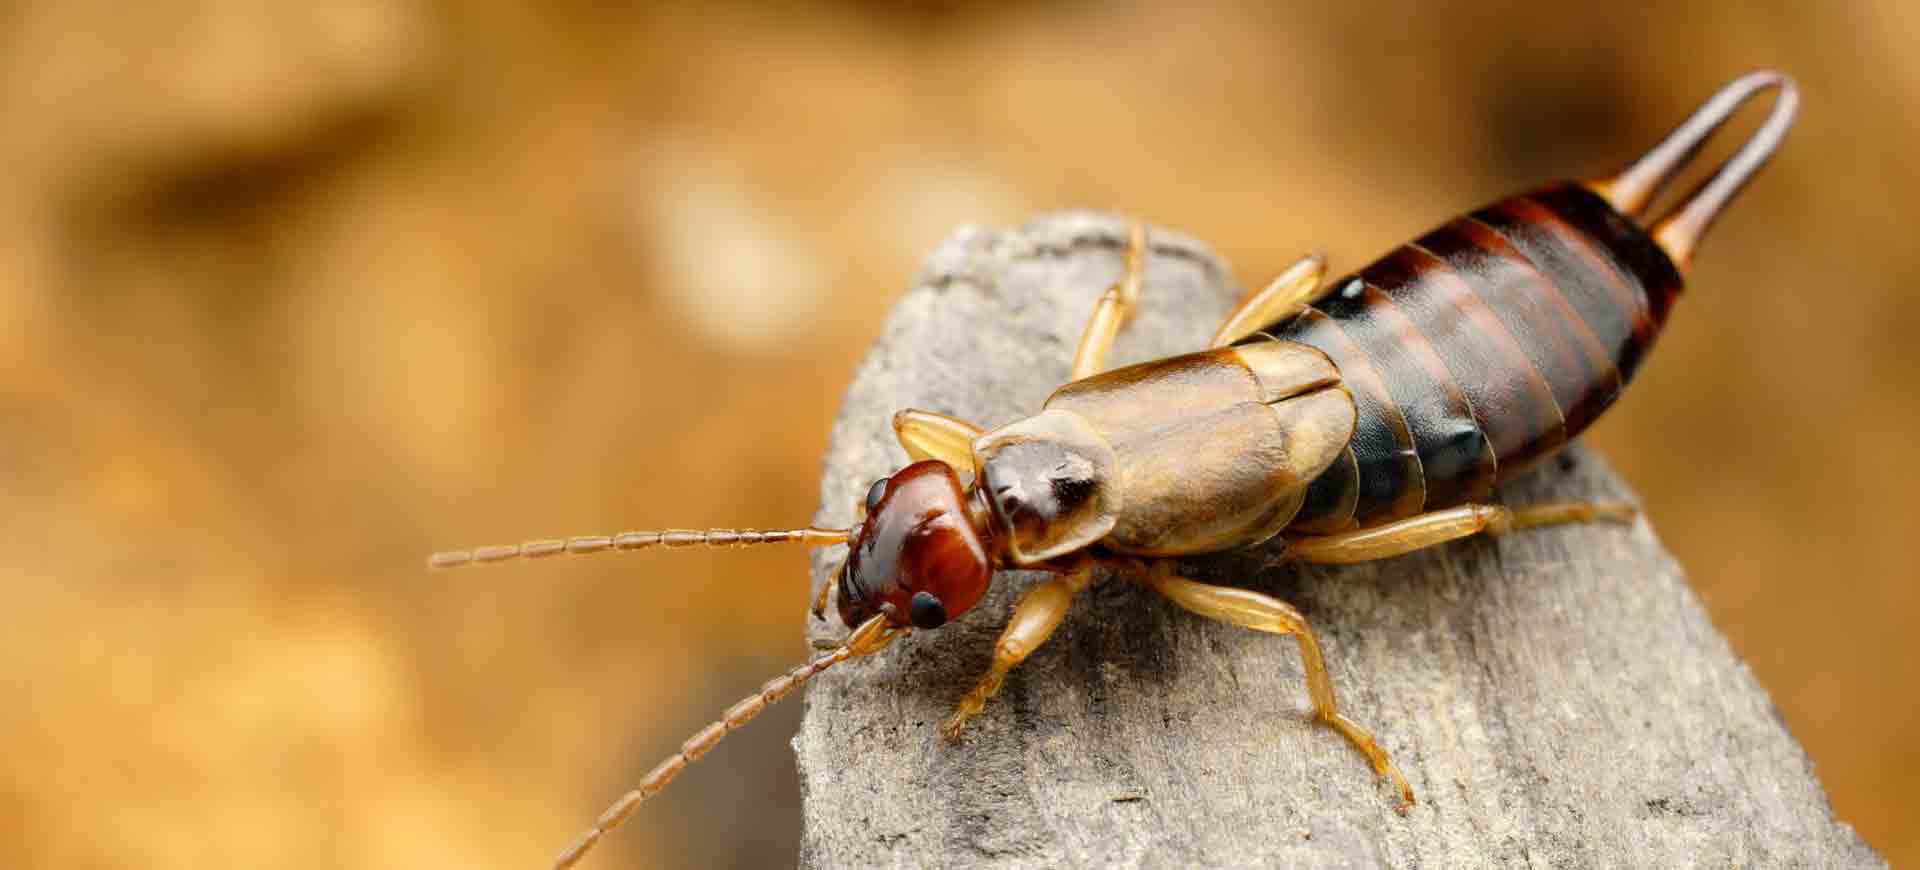 earwig pest control carmel valley